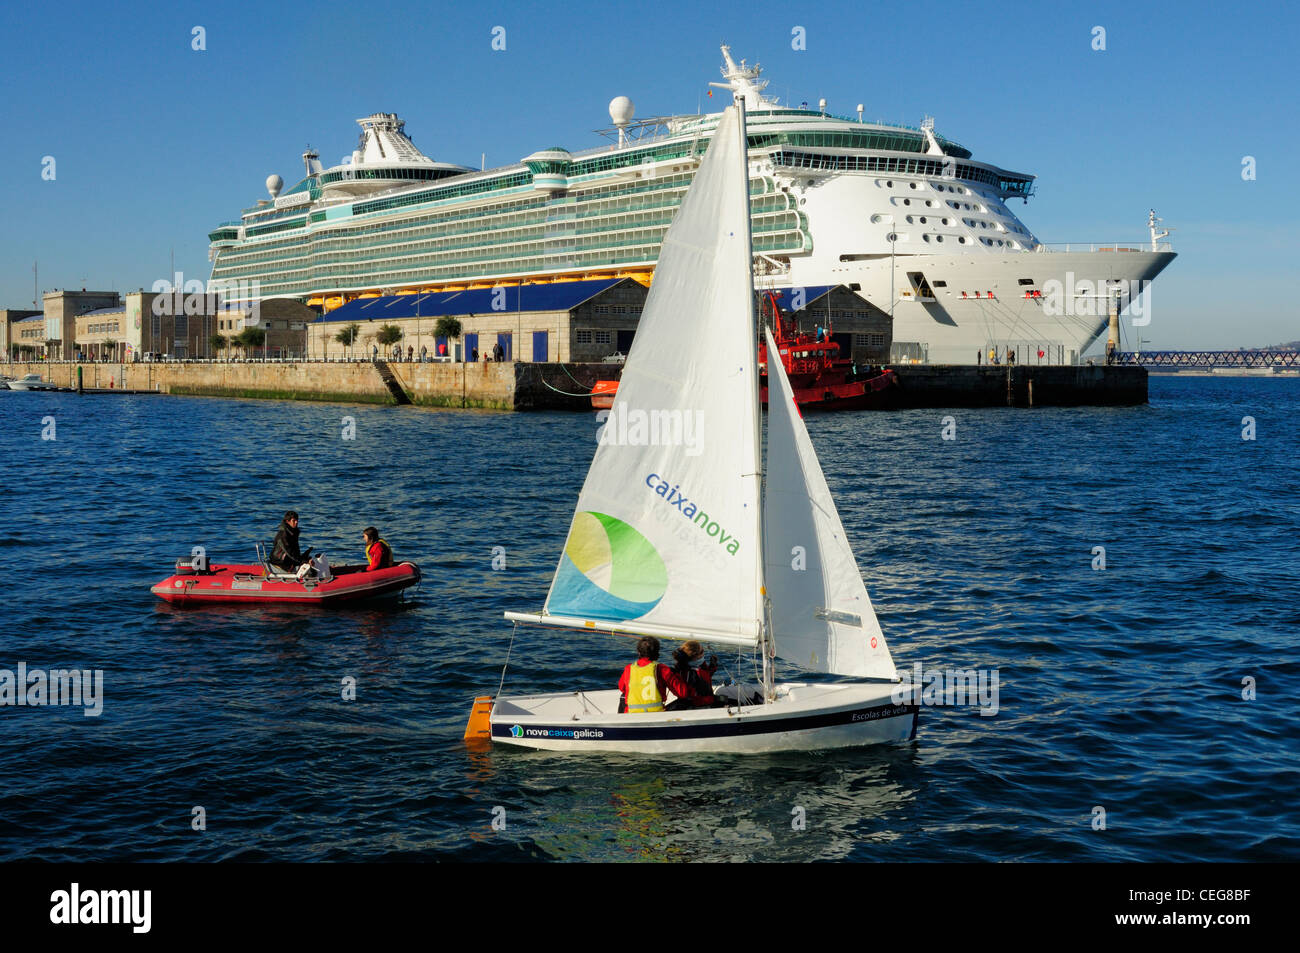 The Independence of the Seas cruise liner tied to the docks in Vigo, Galicia, Spain - Stock Image